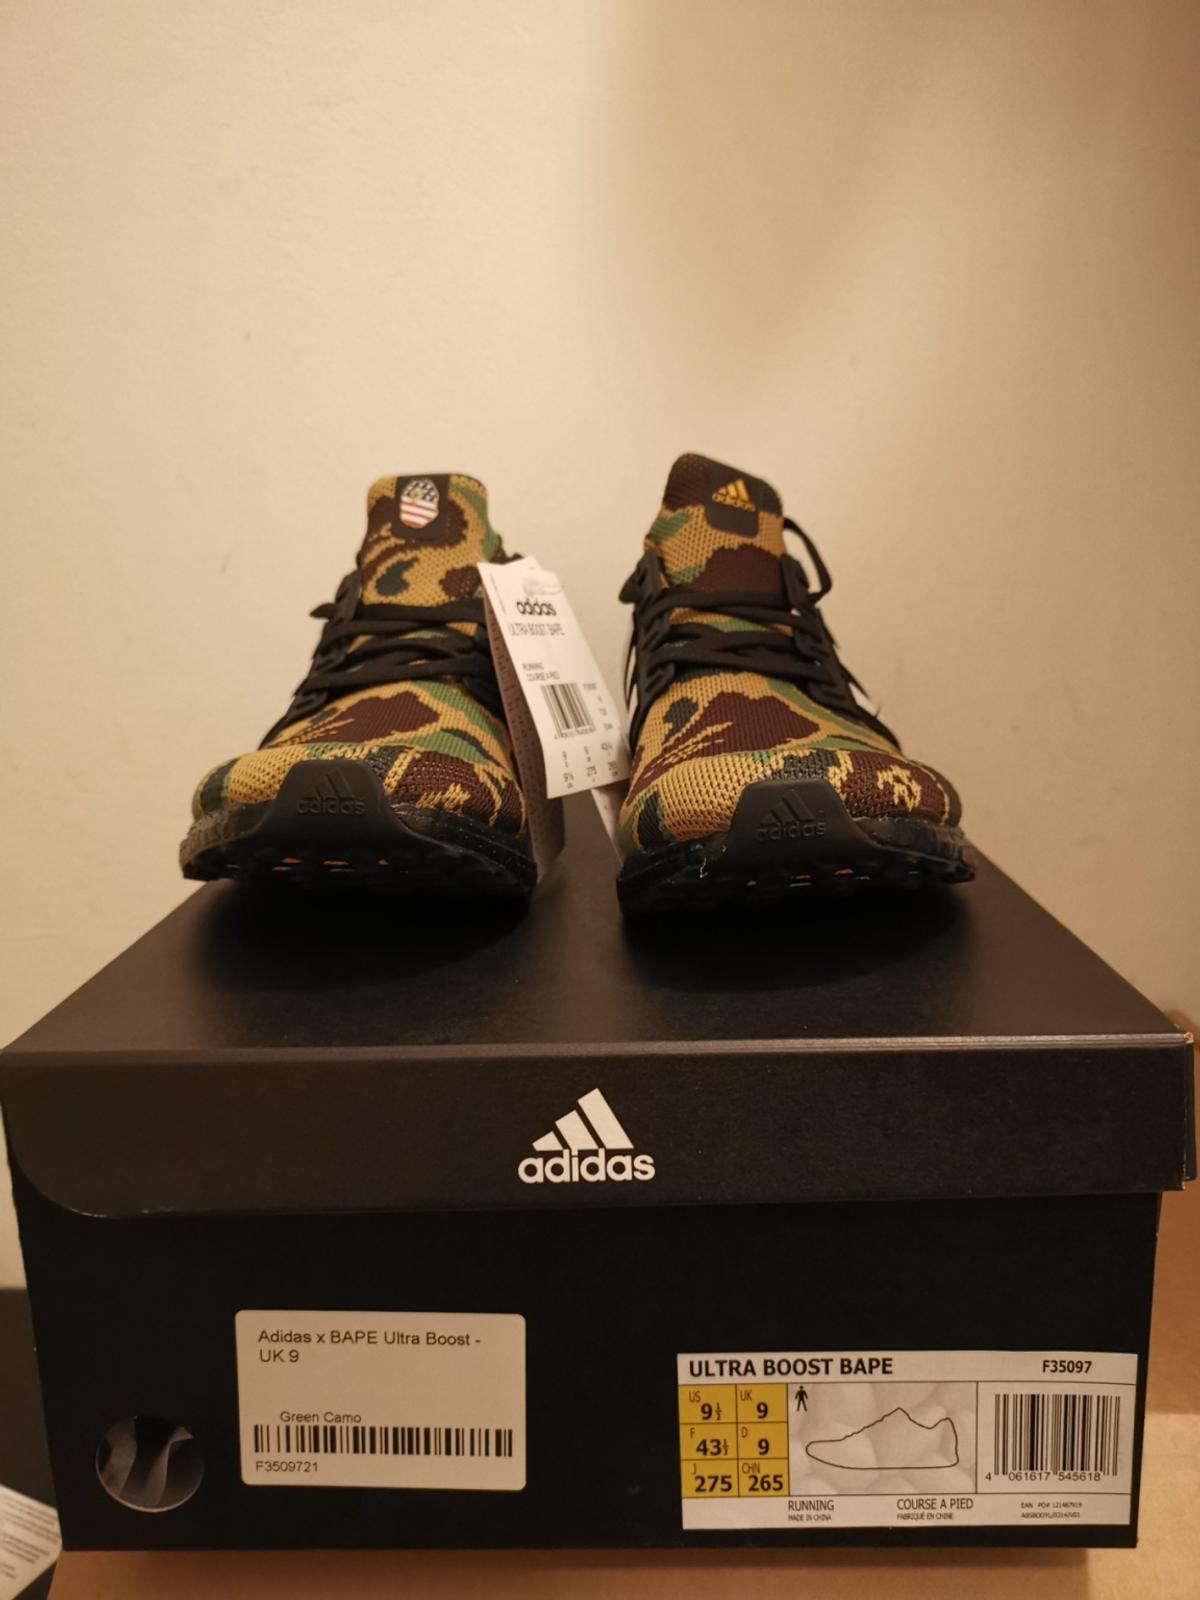 Adidas Ultra Boost 4.0 BAPE Camo 43 13 in 1070 Wien for